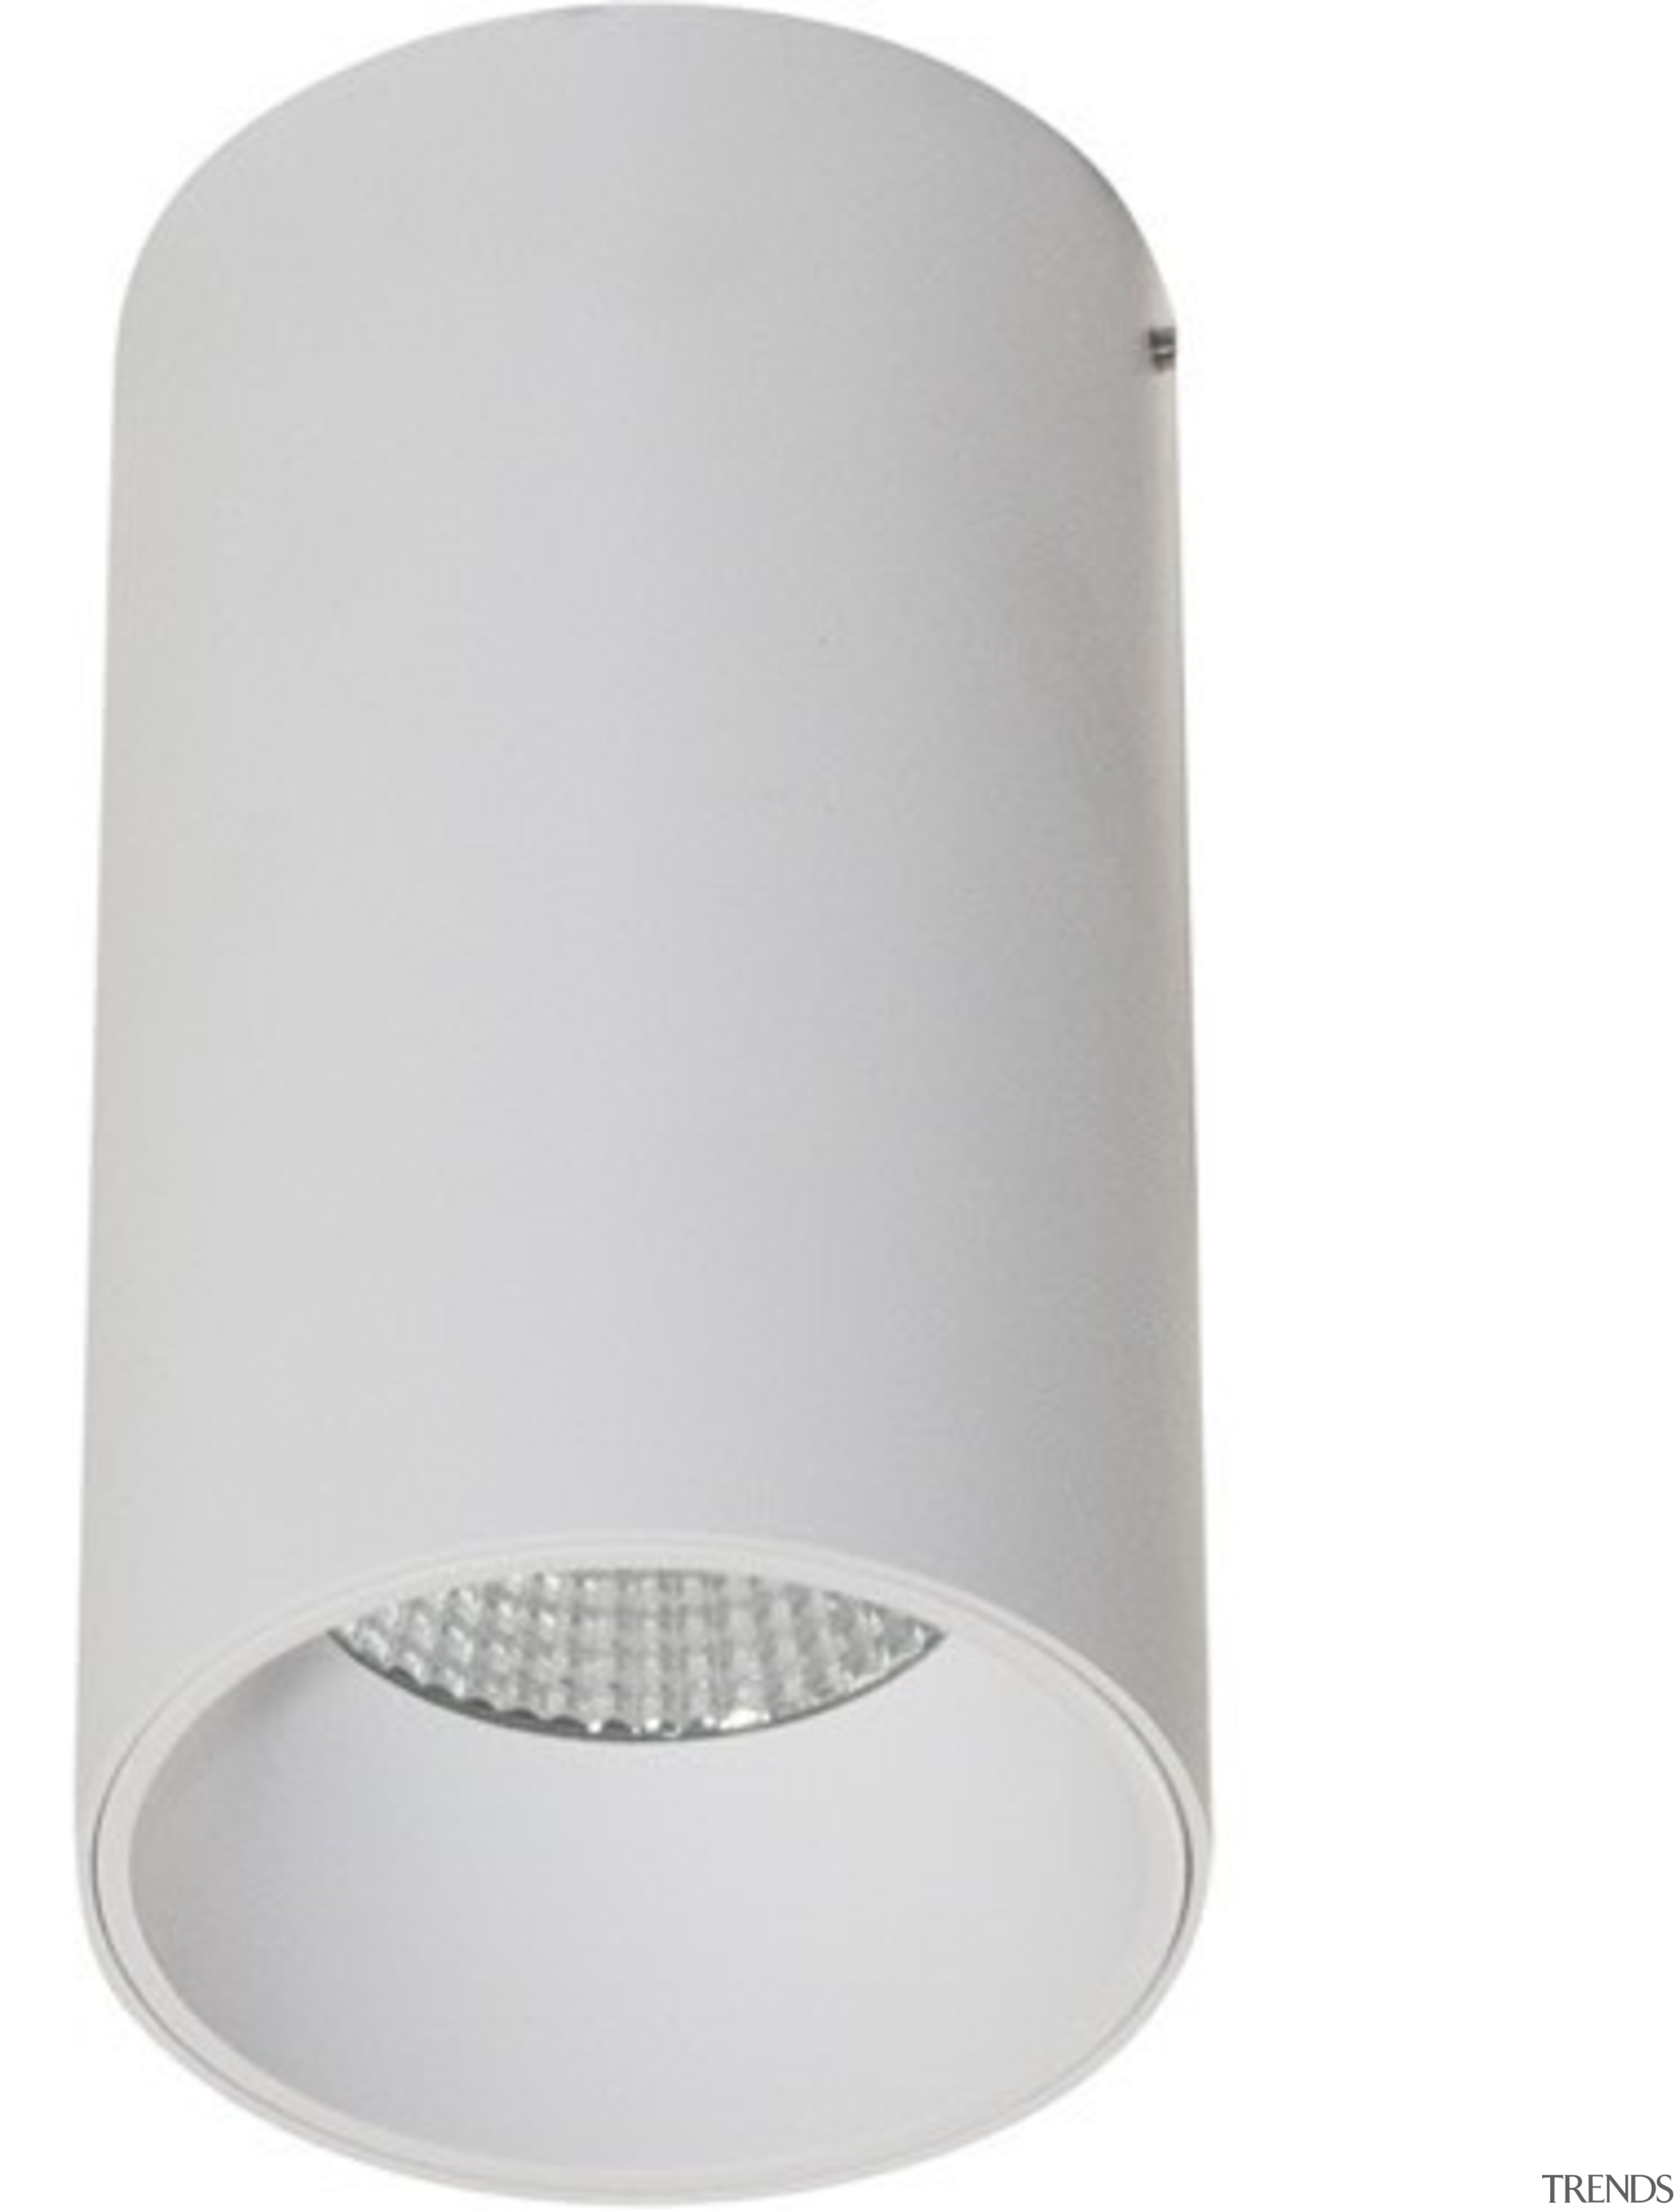 FeaturesThe Eva is an aluminium die-cast surface mount lighting, product, product design, white